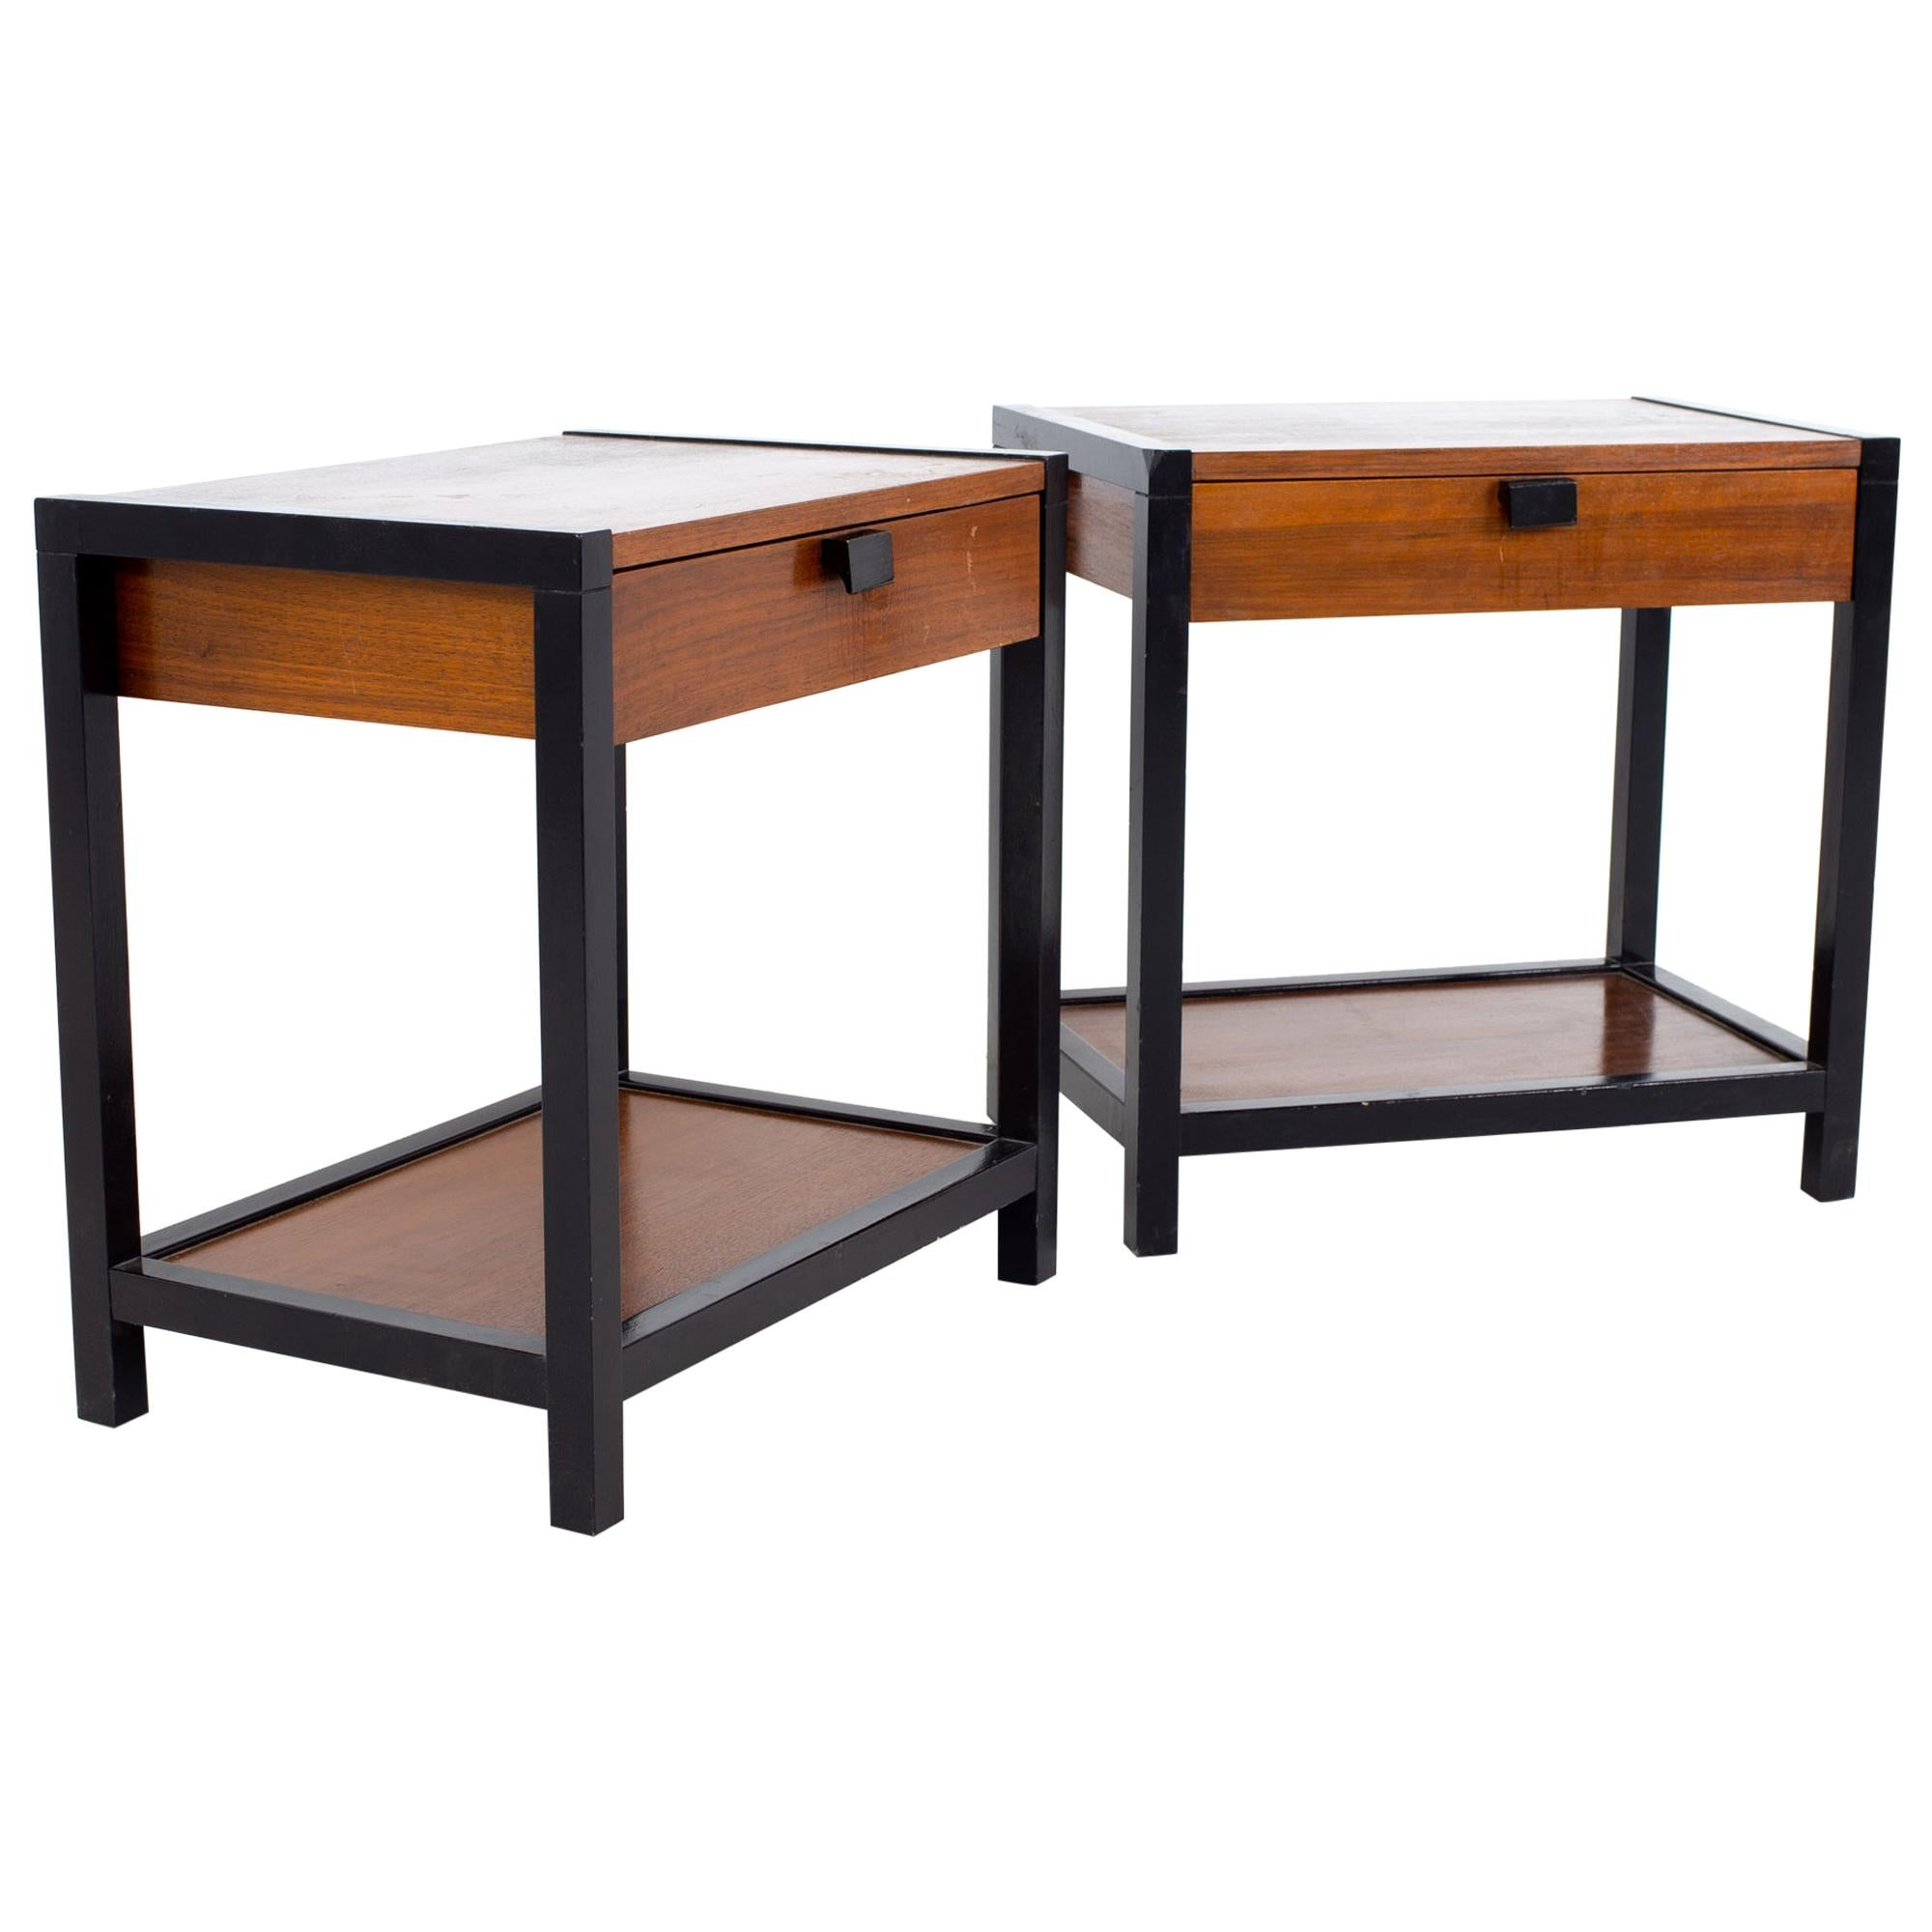 Milo Baughman for Directional Mid Century Nightstands, a Pair